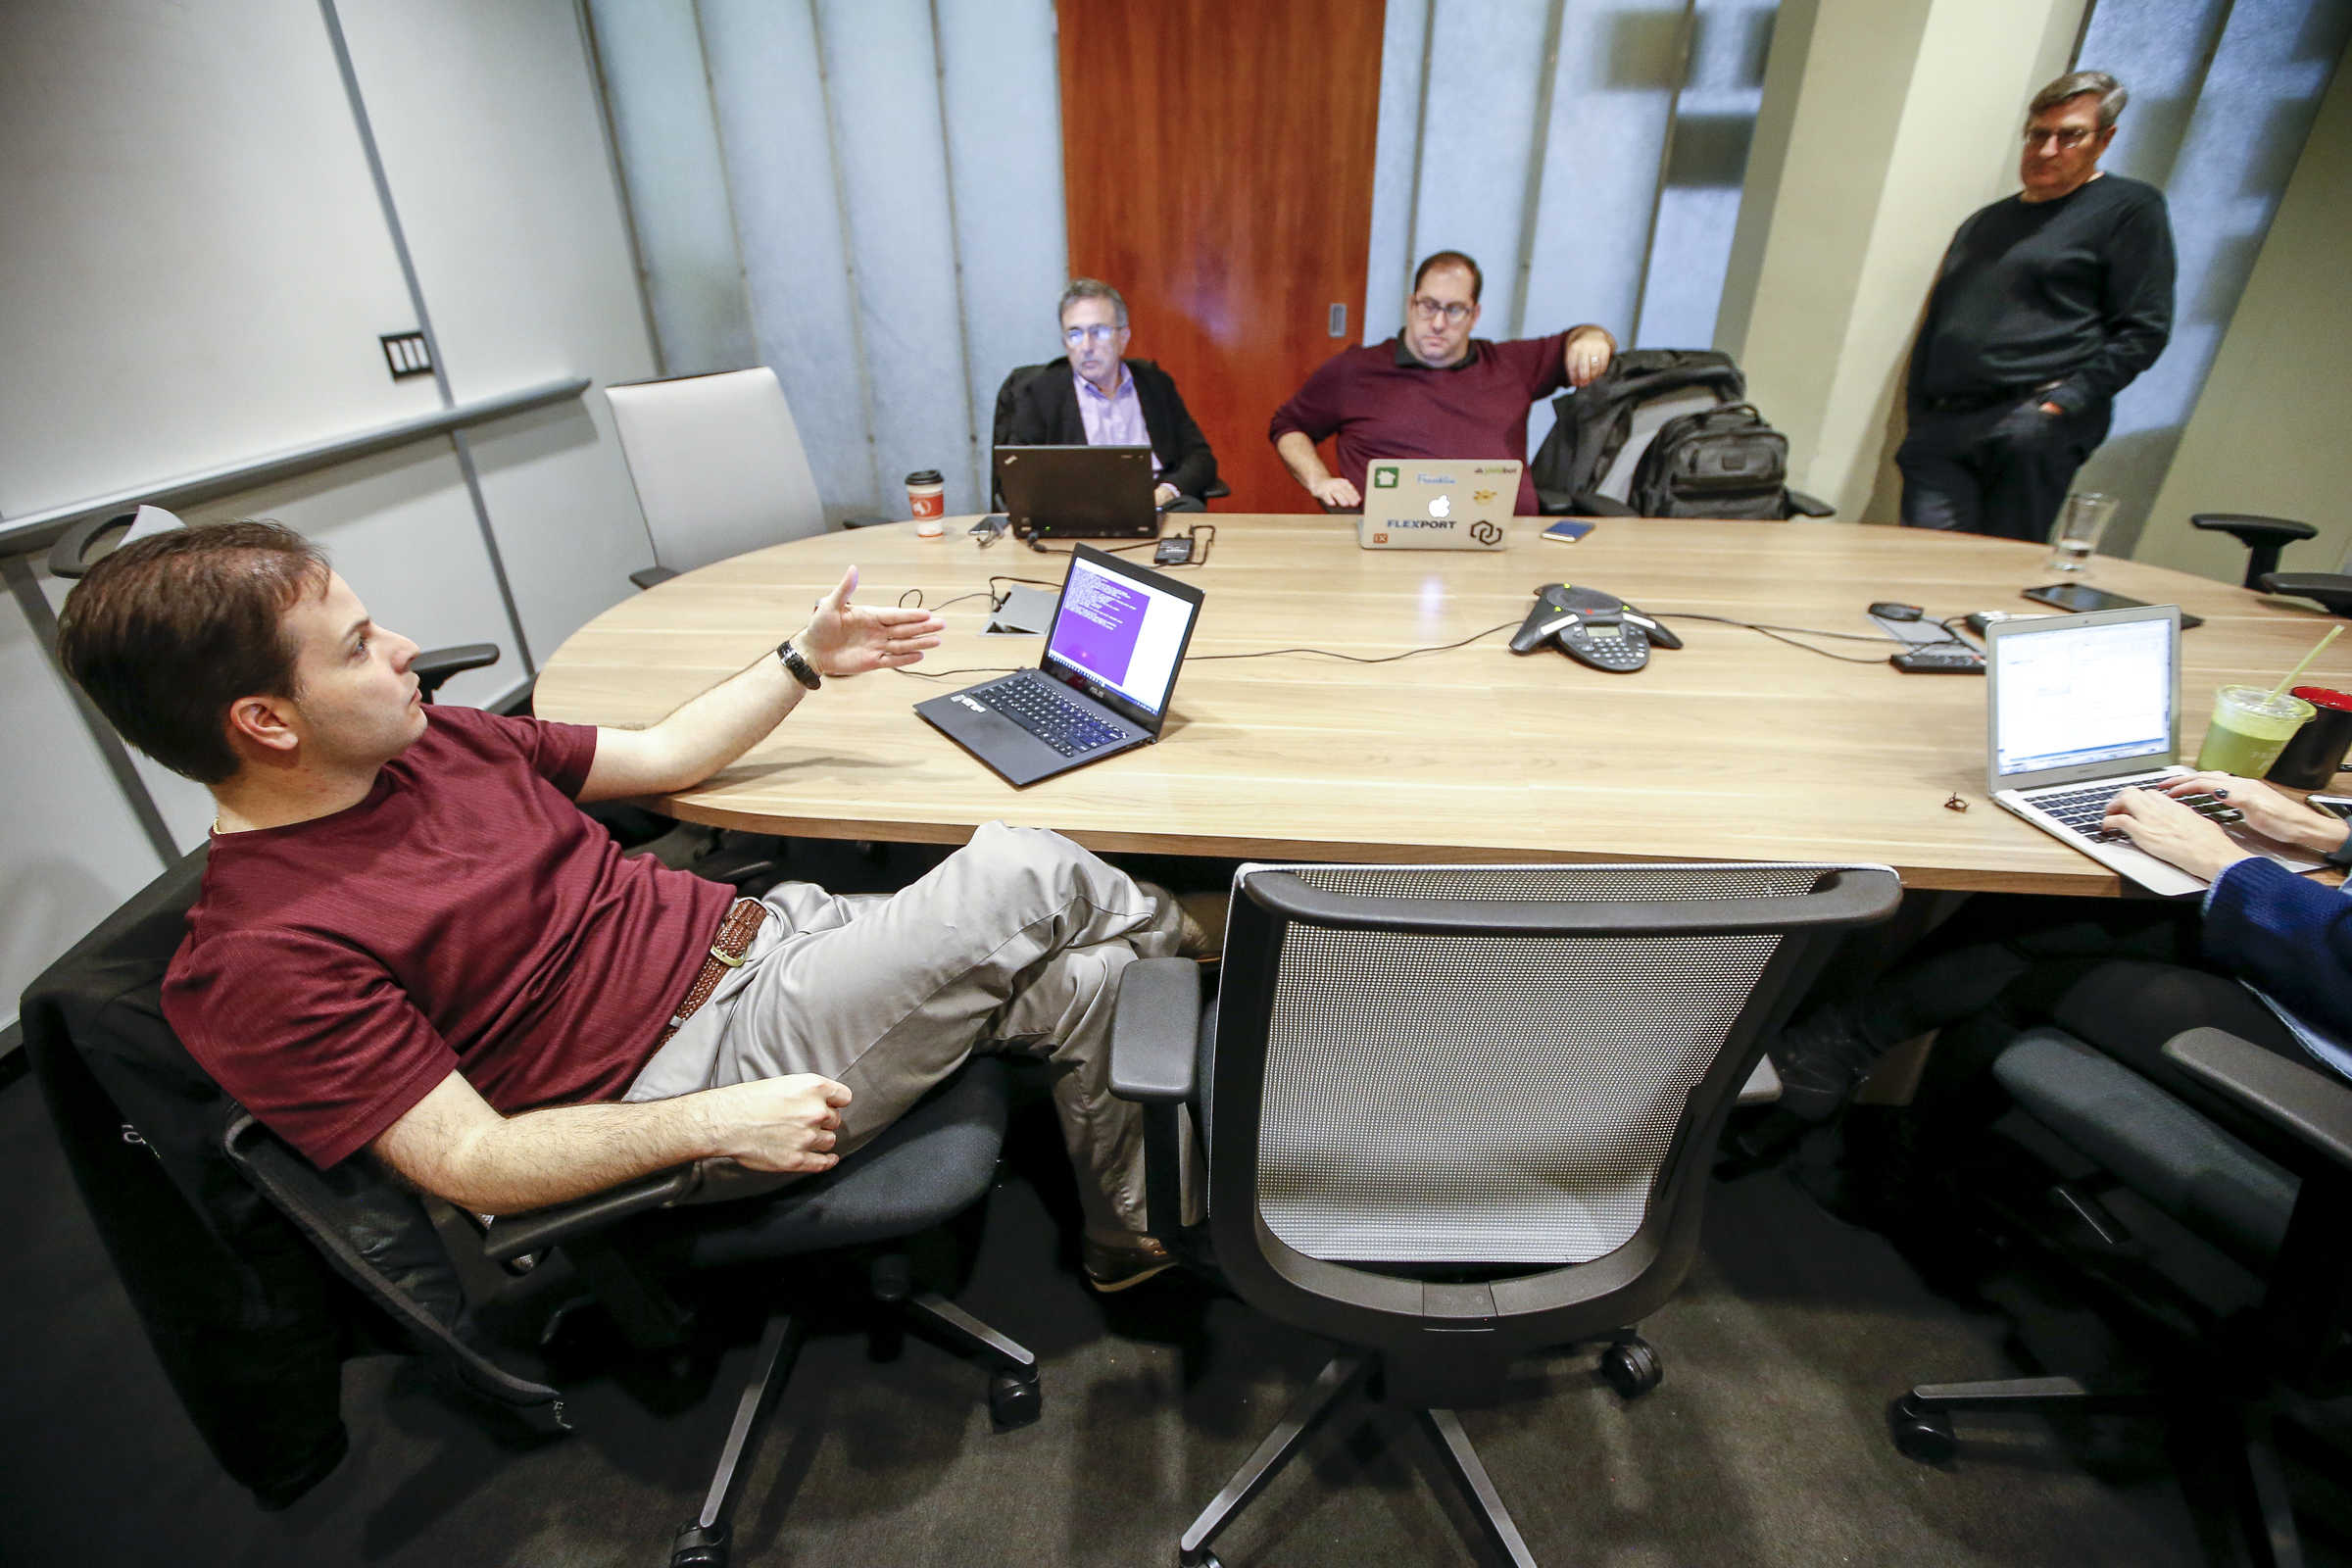 Paul Martino, left, general partner at Bullpen Capital, meets with general partners Richard Melmon, Eric Wiesen, and Duncan Davidson, right, during a board meeting.